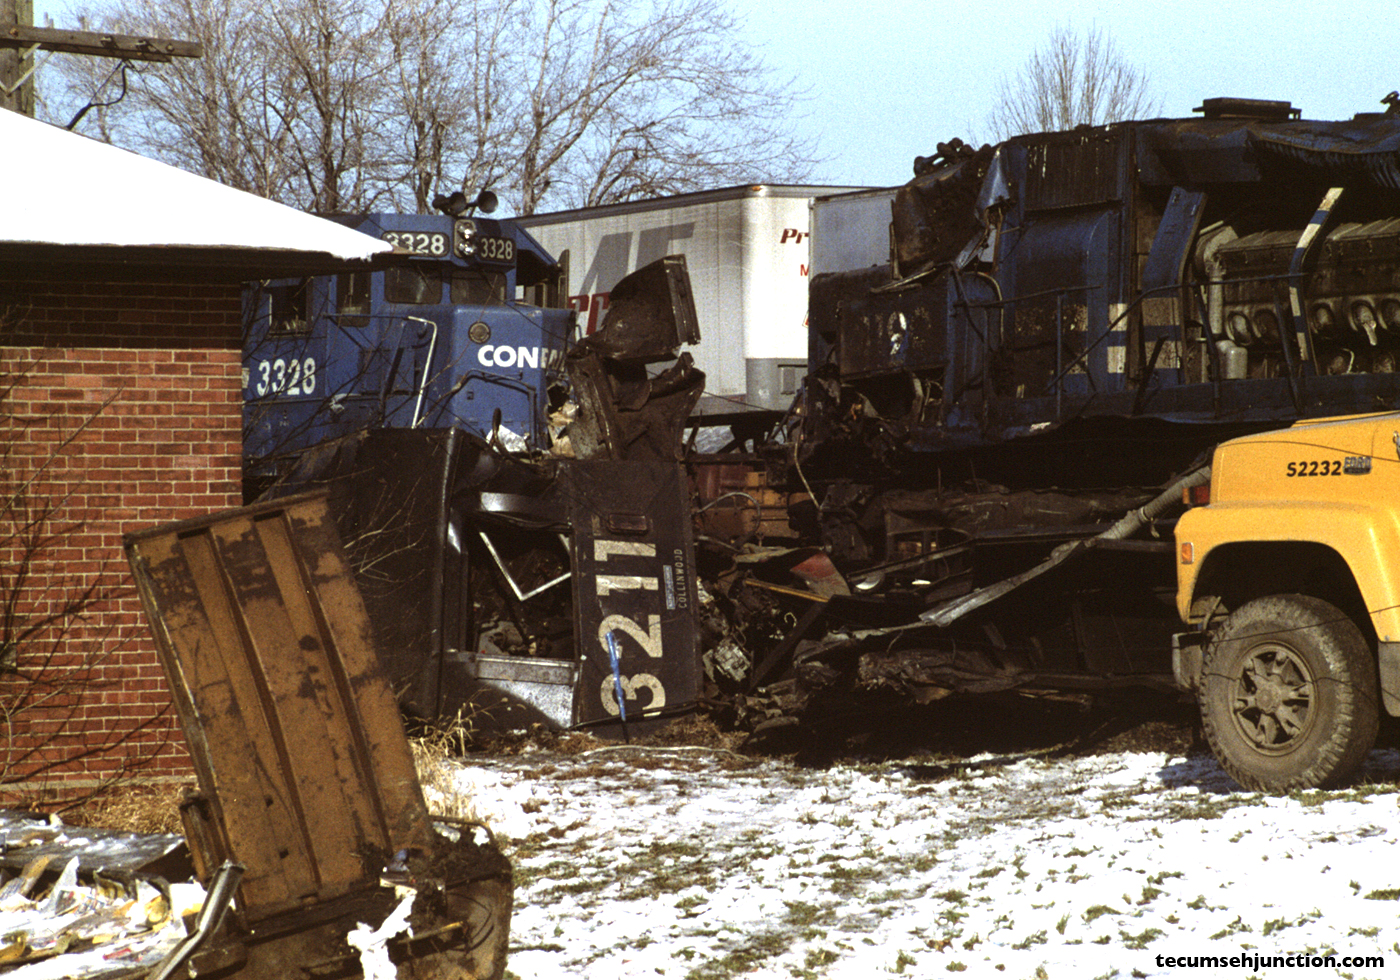 The crumpled remains of the cab of Conrail #3211.